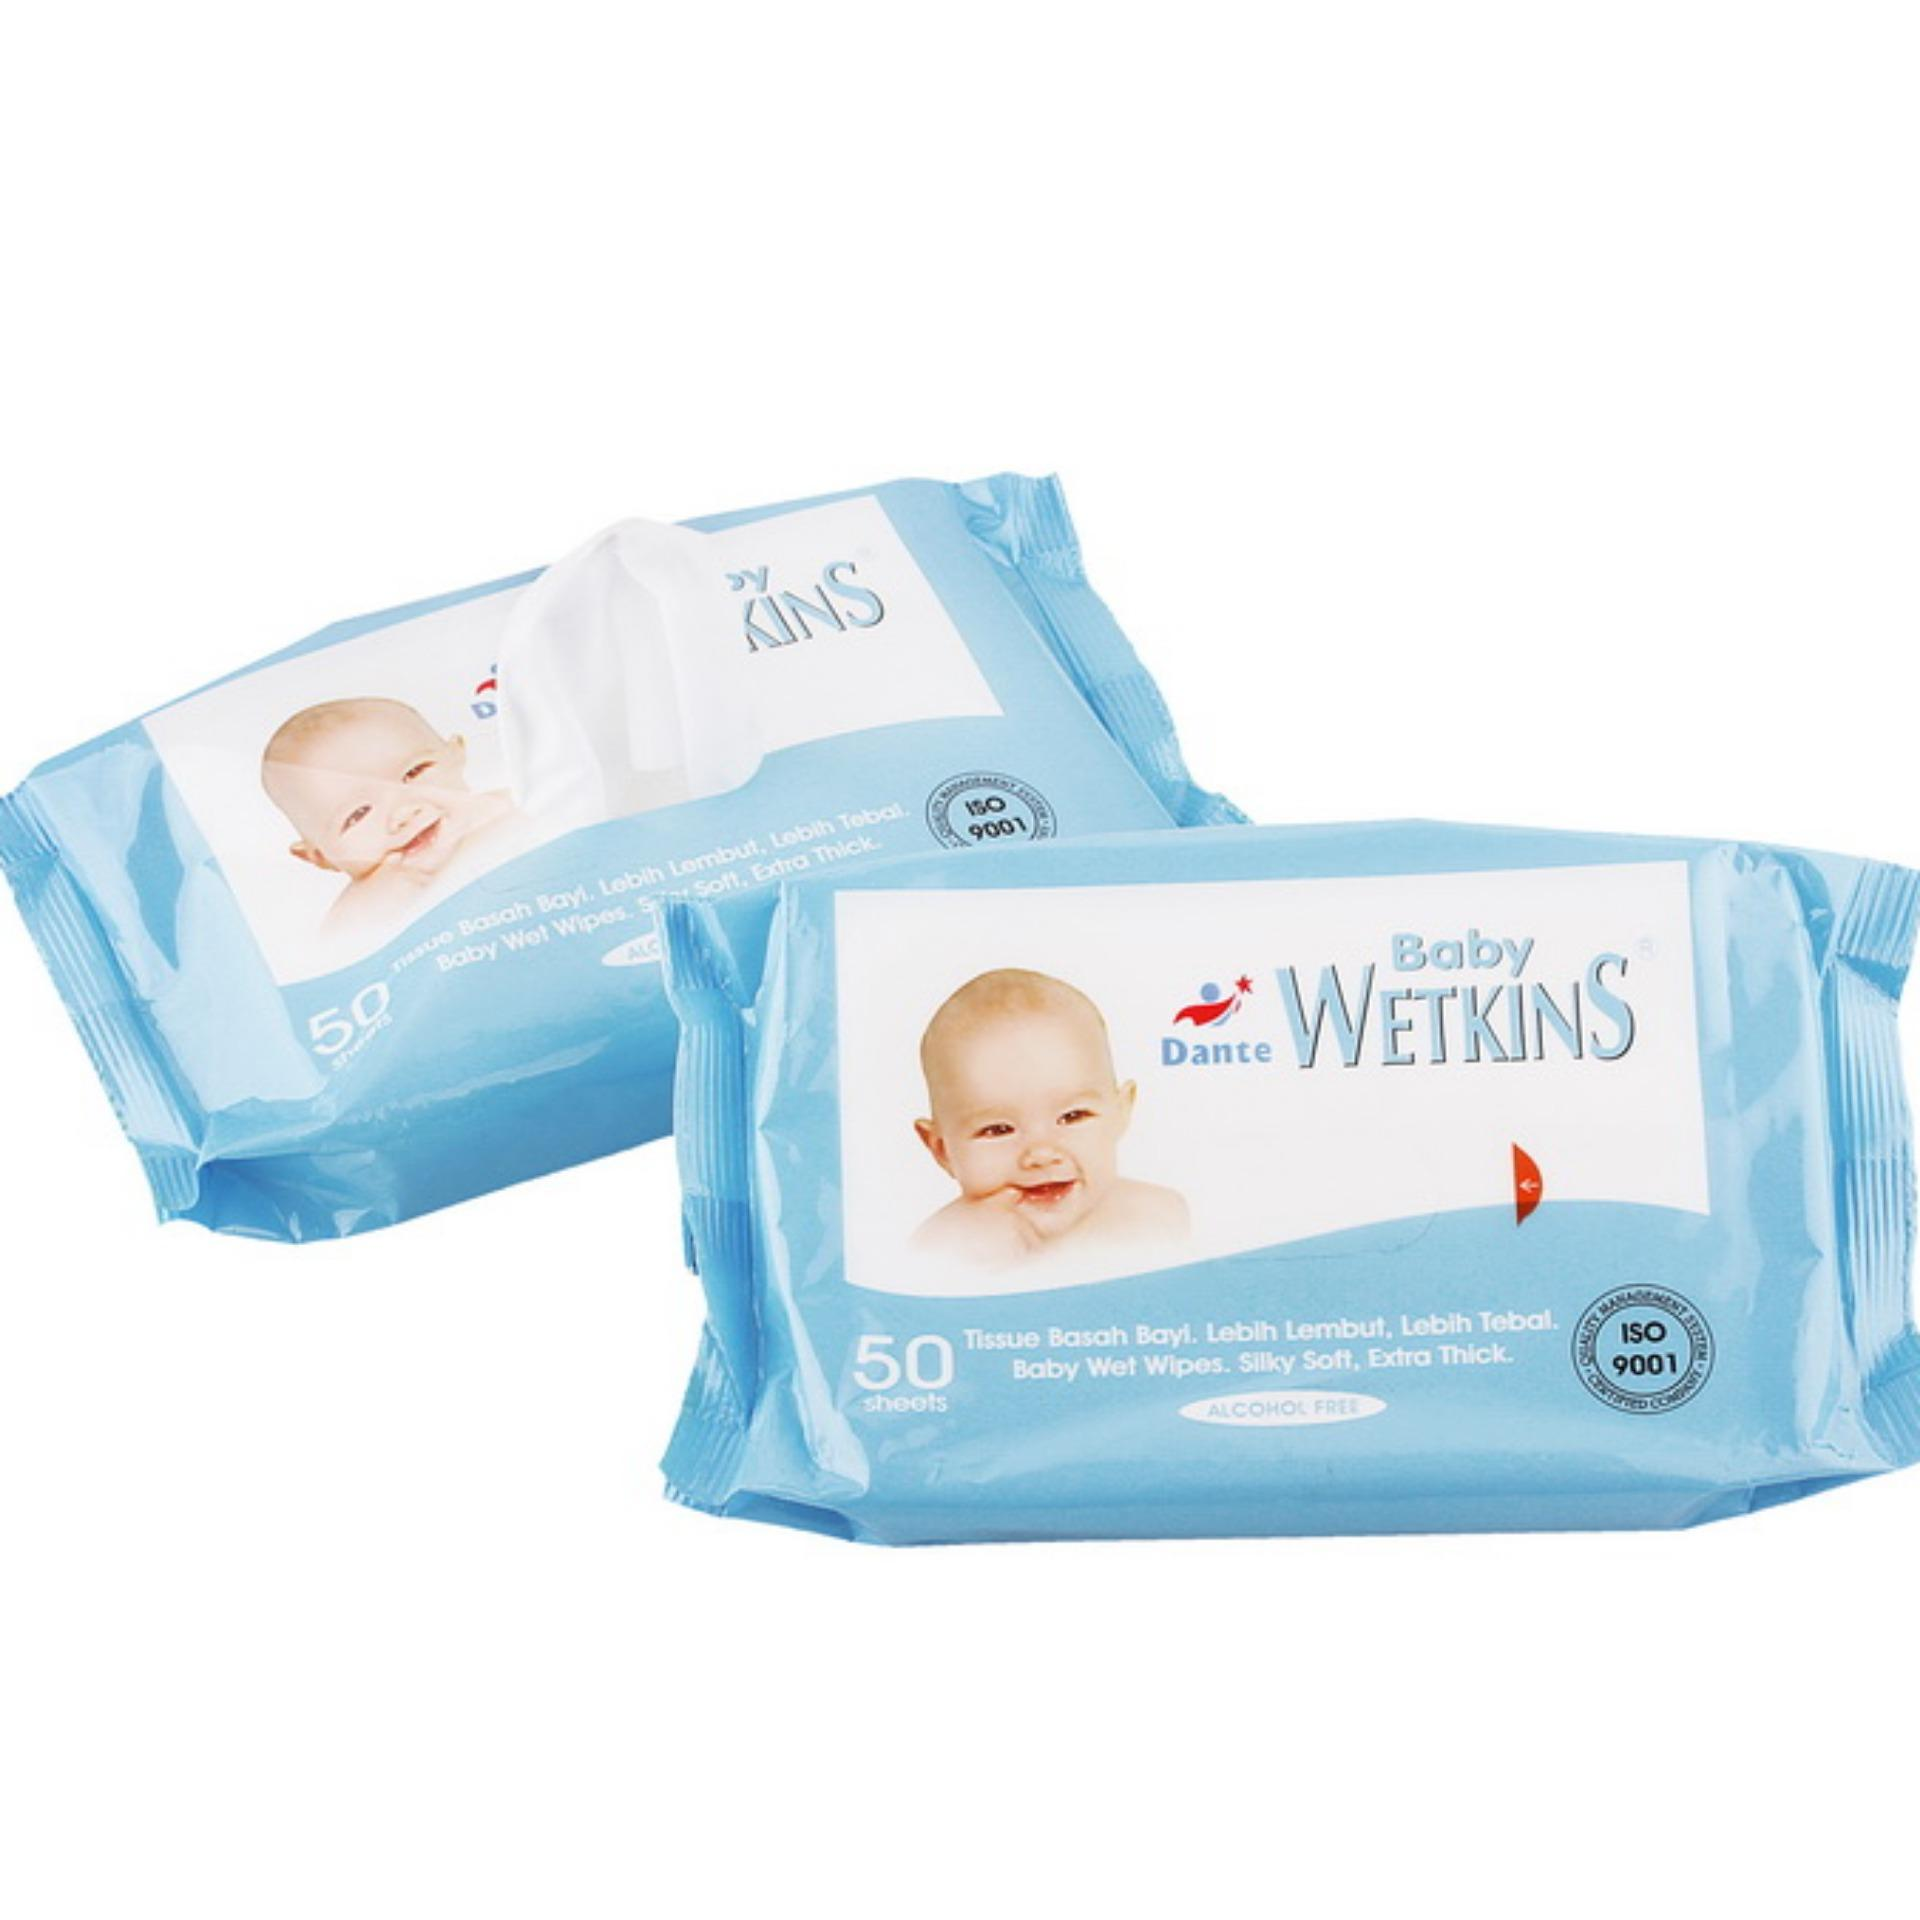 Tissue Basah Wetkins Baby Wipes Blue 50'S 1 Pack